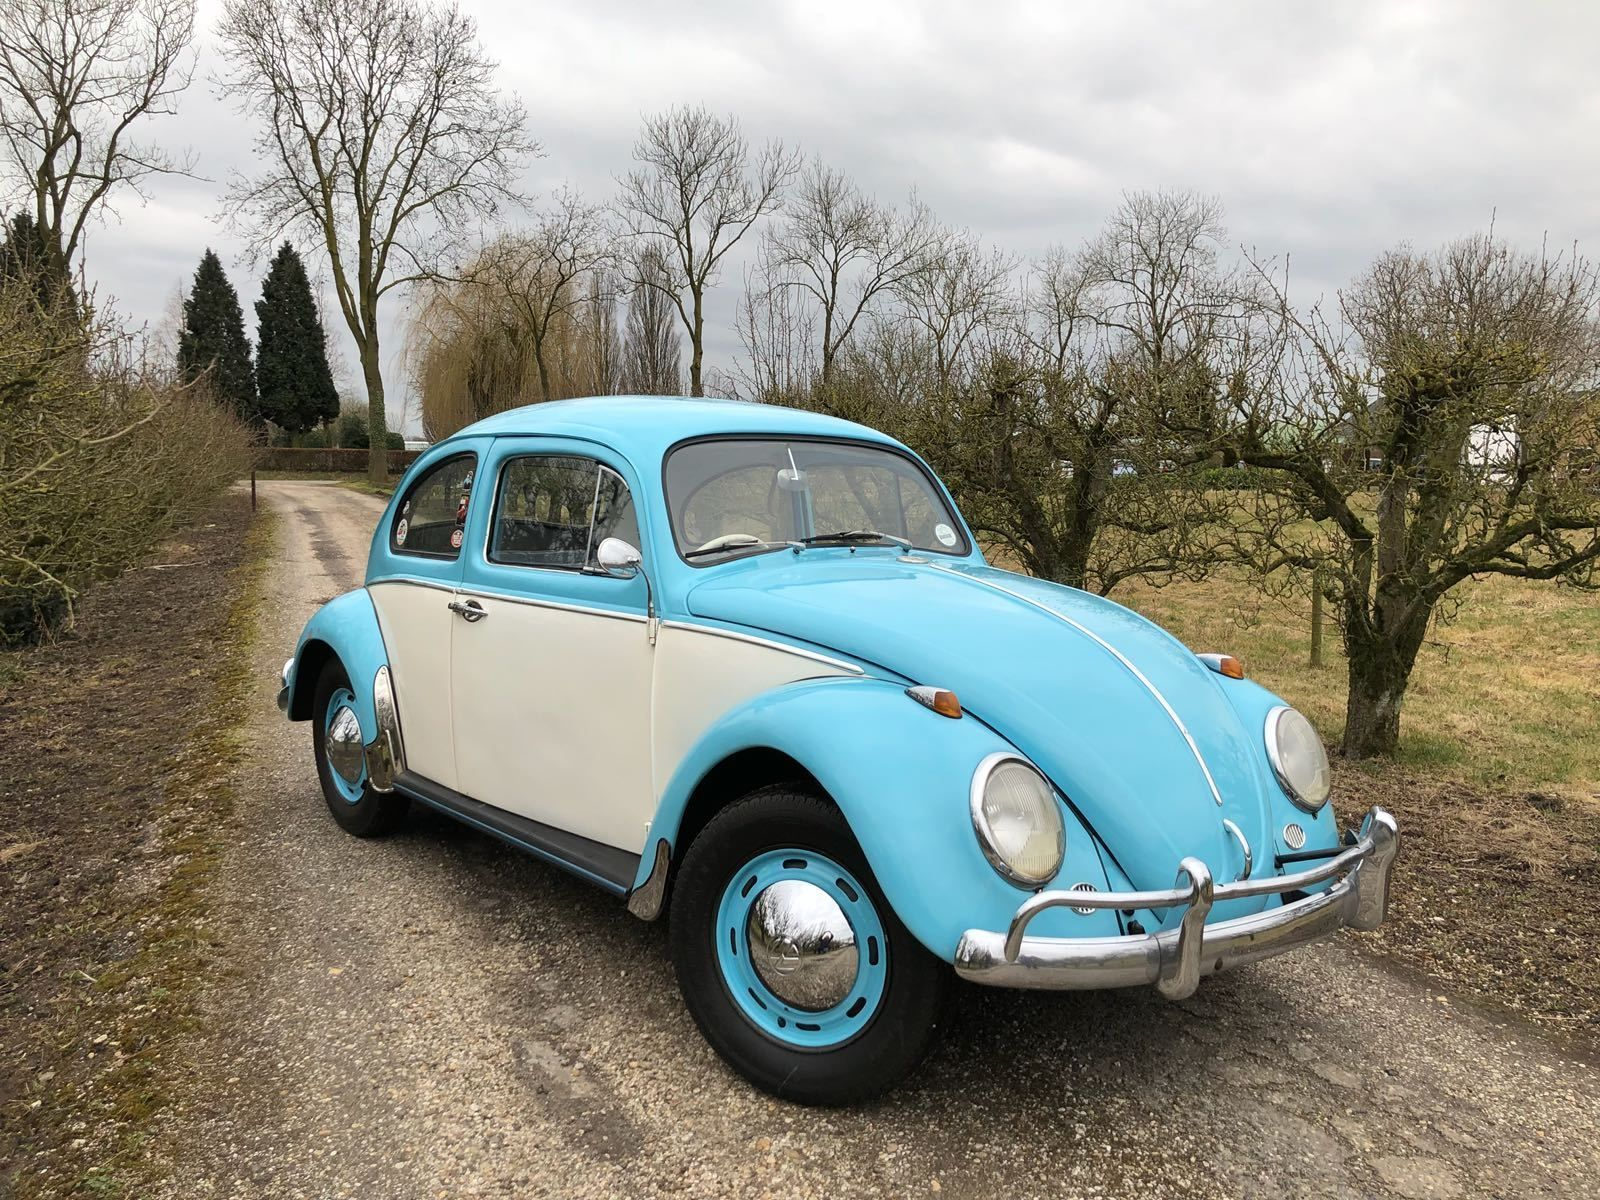 eBay: 1963 Volkswagen Beetle - Classic 1963 Matching numbers perfect ...